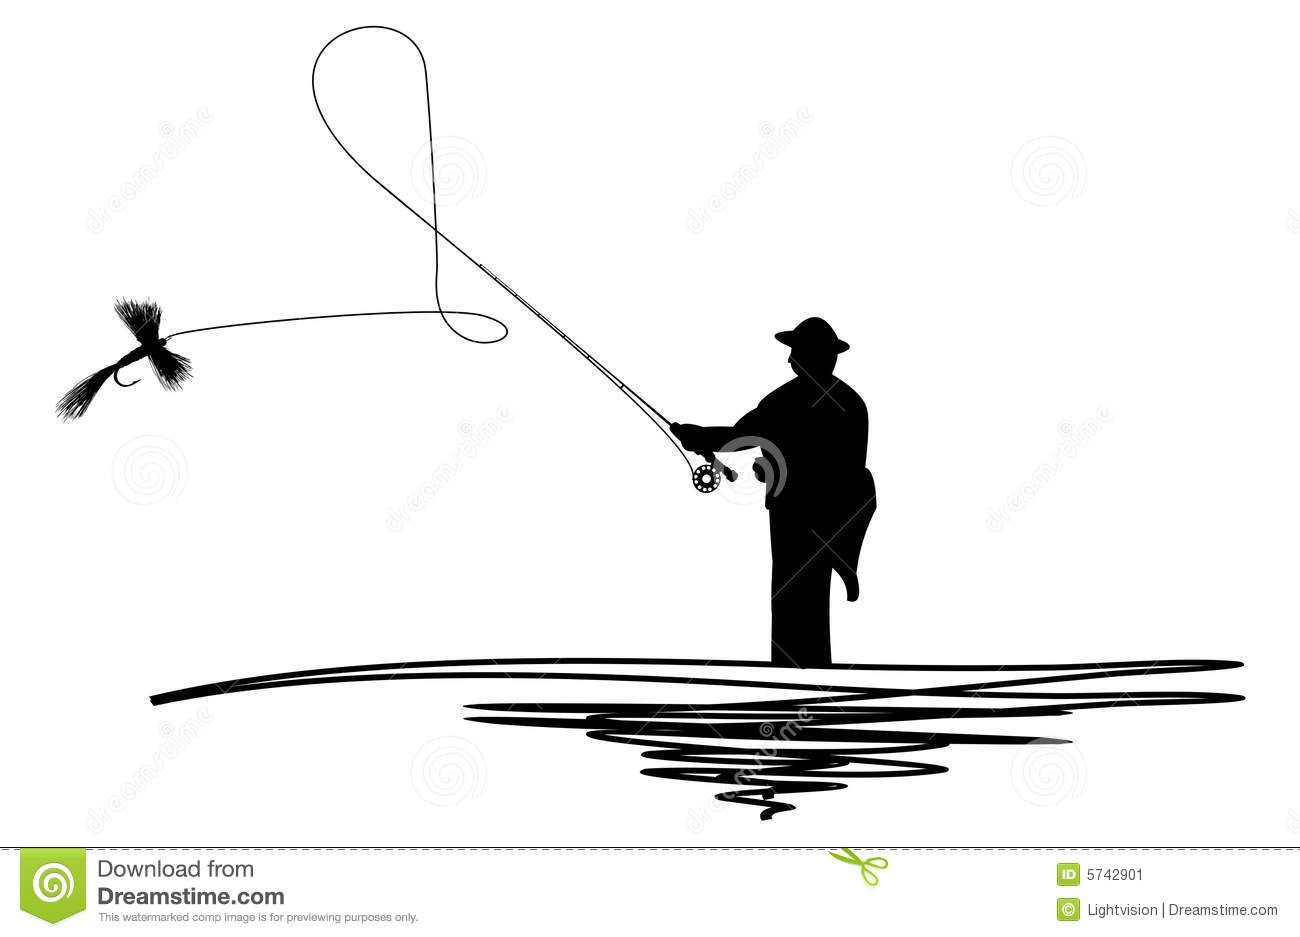 Fisherman Silhouette Clipart Clipart Kid Fly Fishing Tattoo Fisherman Silhouette Silhouette Illustration